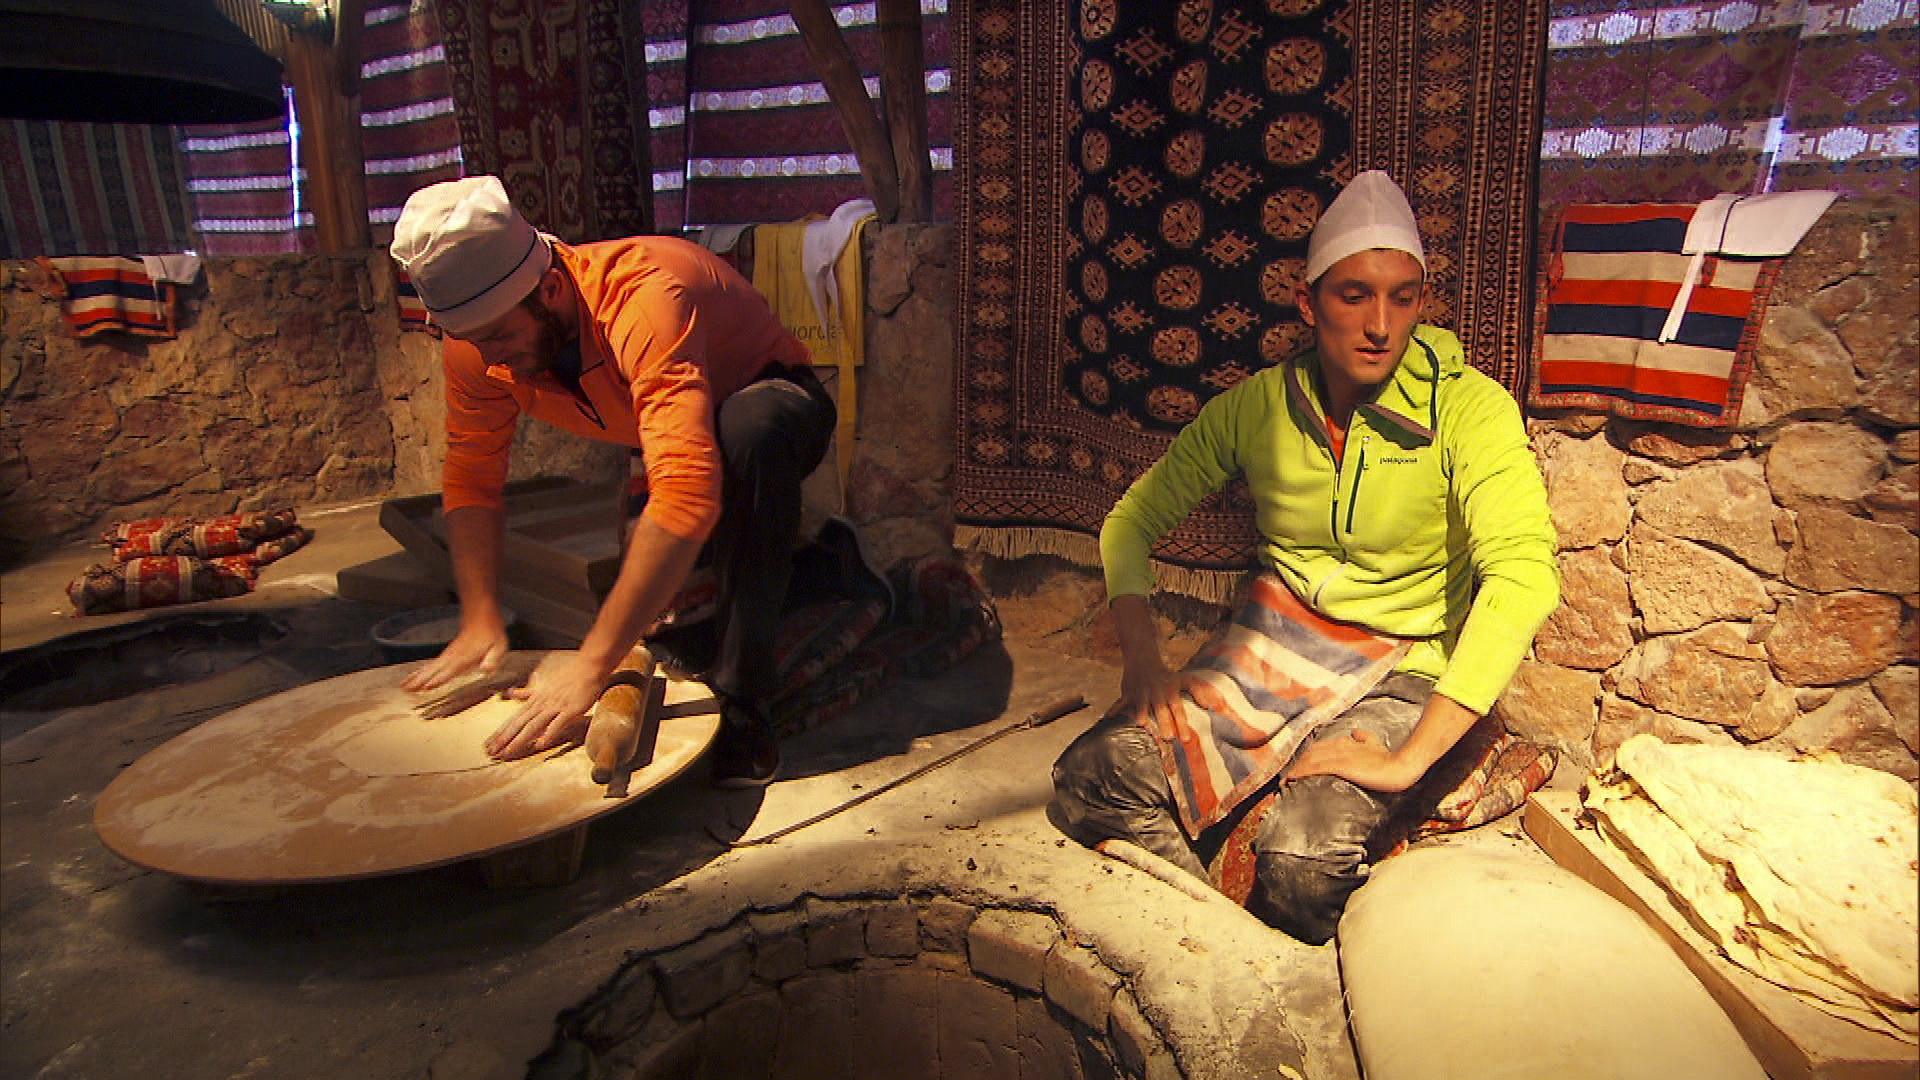 In Detour B, Brodie and Kurt bake 15 lavash breads in order to receive the next clue.